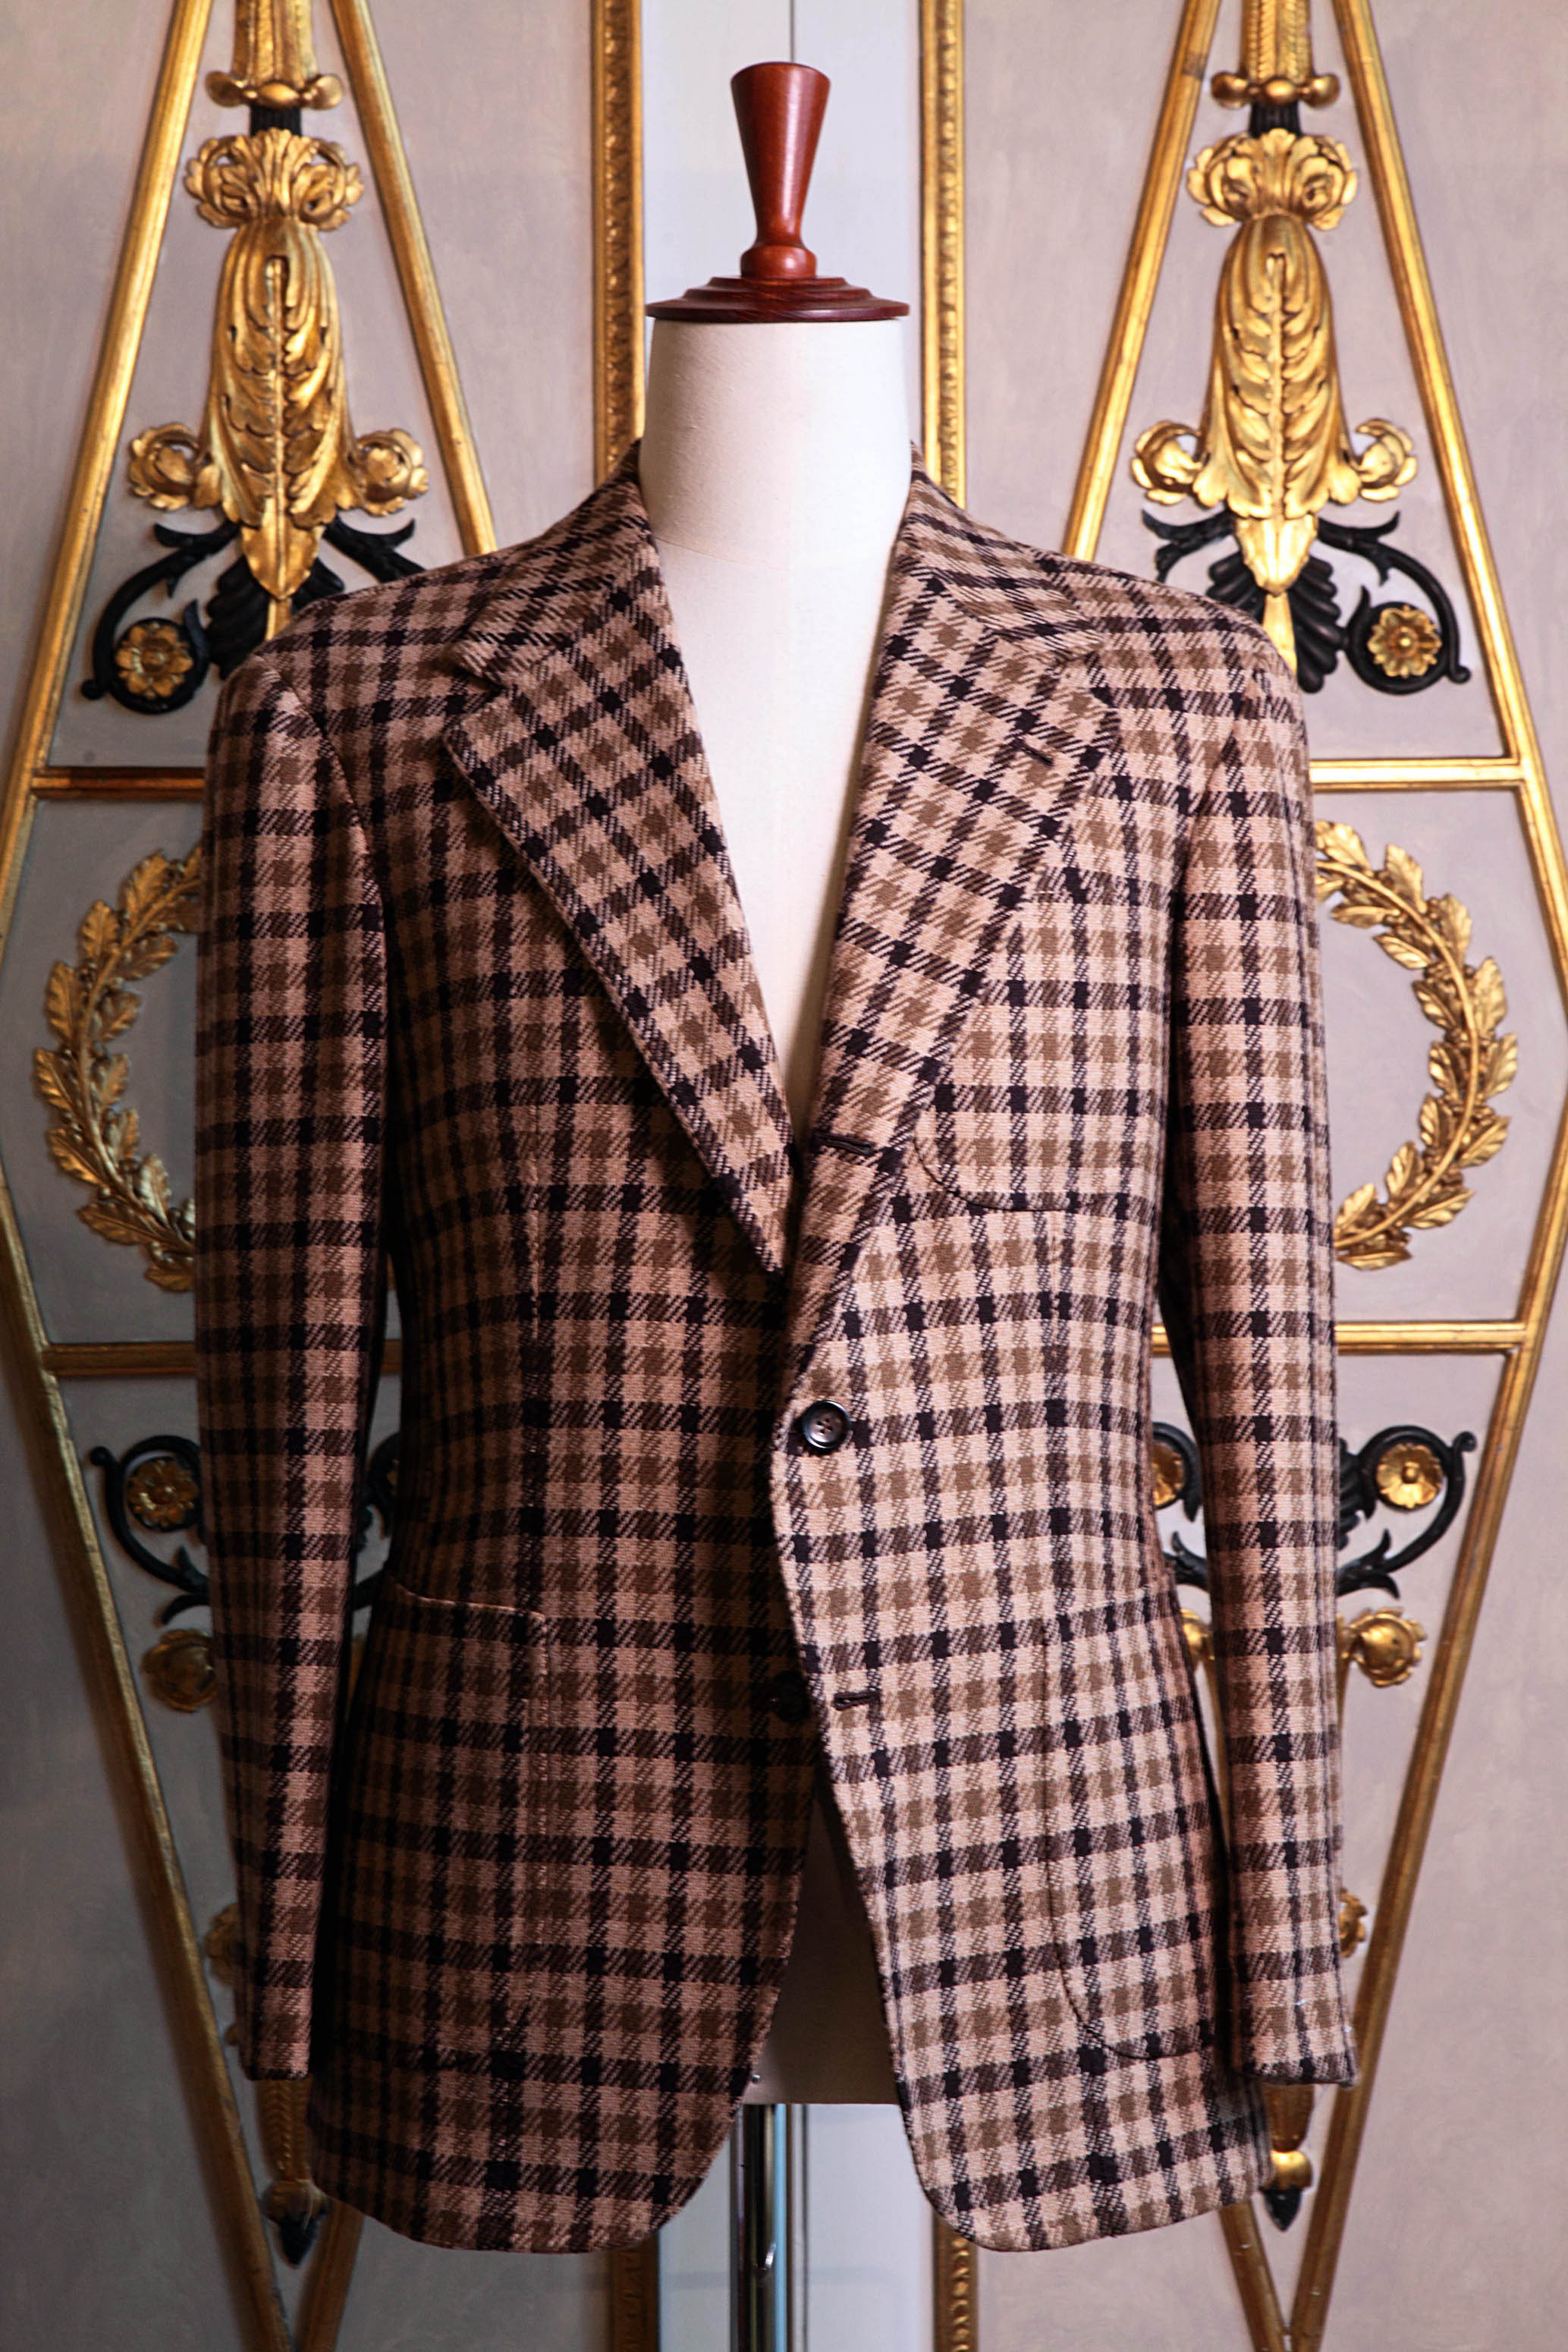 From bespoke tailoring to hand-made ready-to-wear : the ambitious undertaking of Sartoria Dalcuore